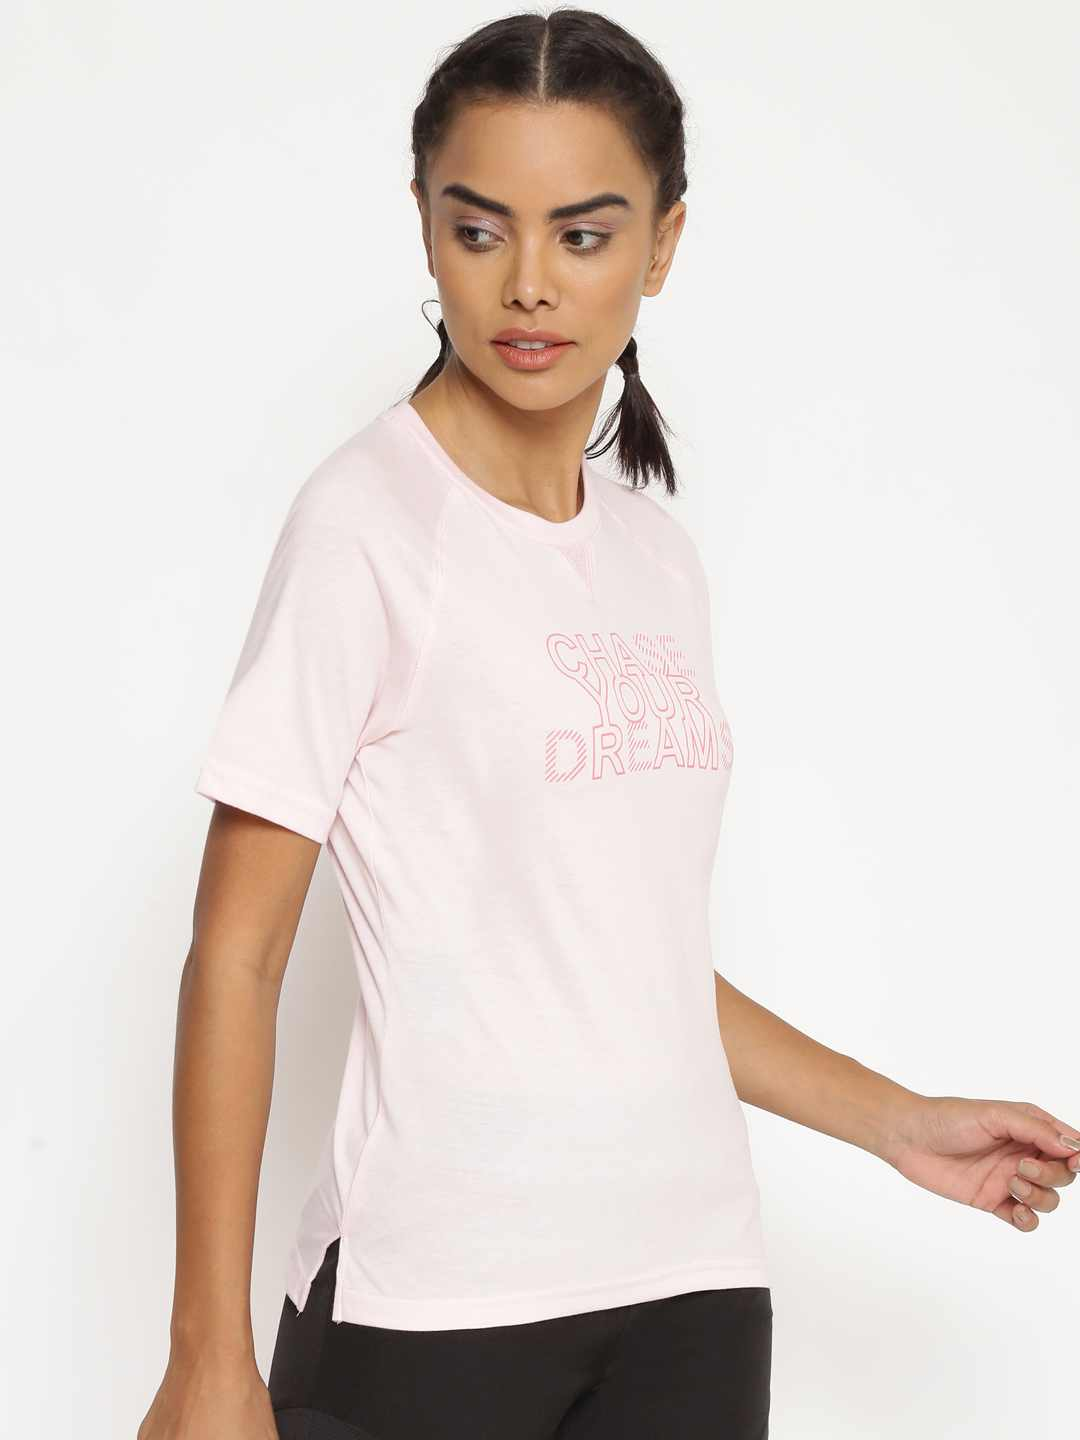 CHASE YOUR DREAMS (baby Pink)